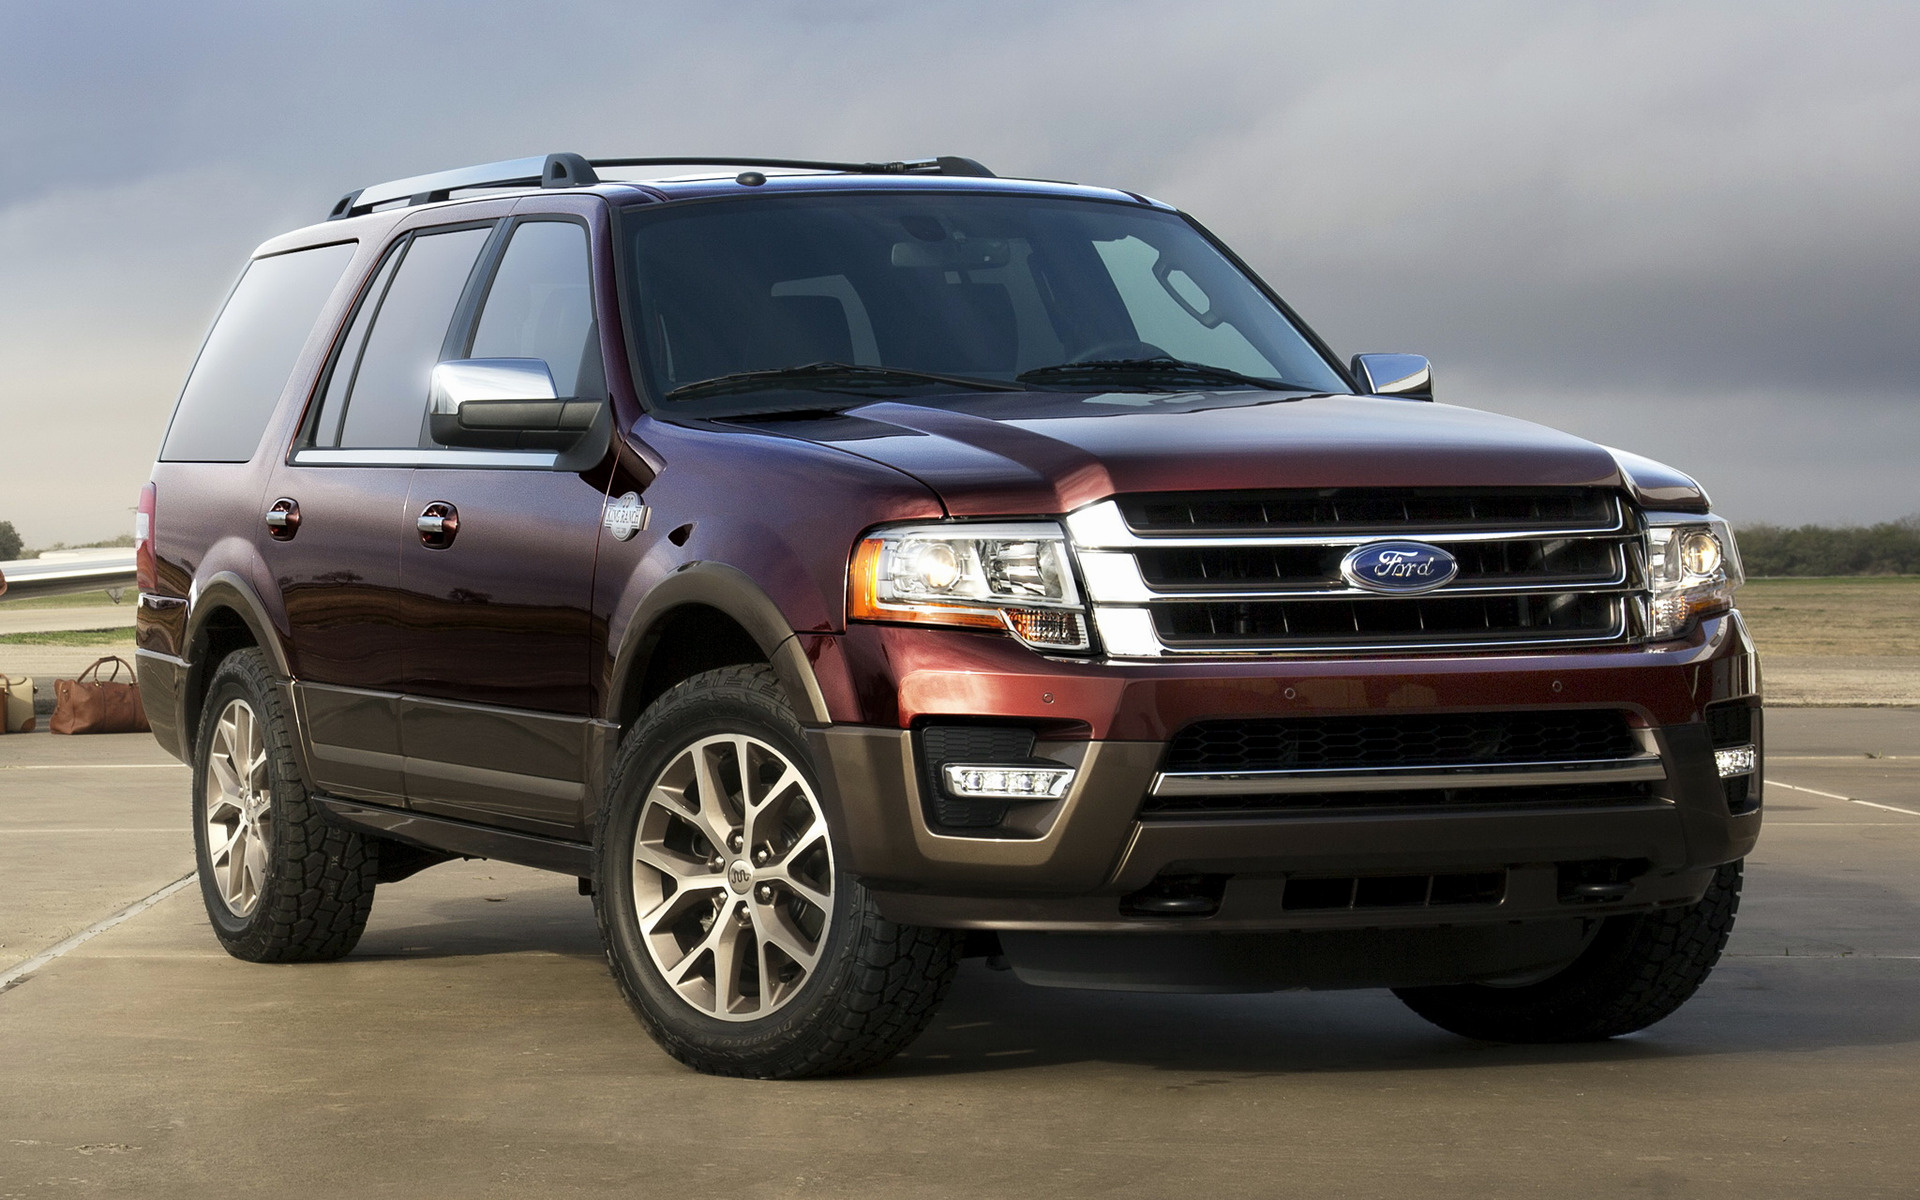 Ford Expedition King Ranch (2015) Wallpapers and HD Images ...